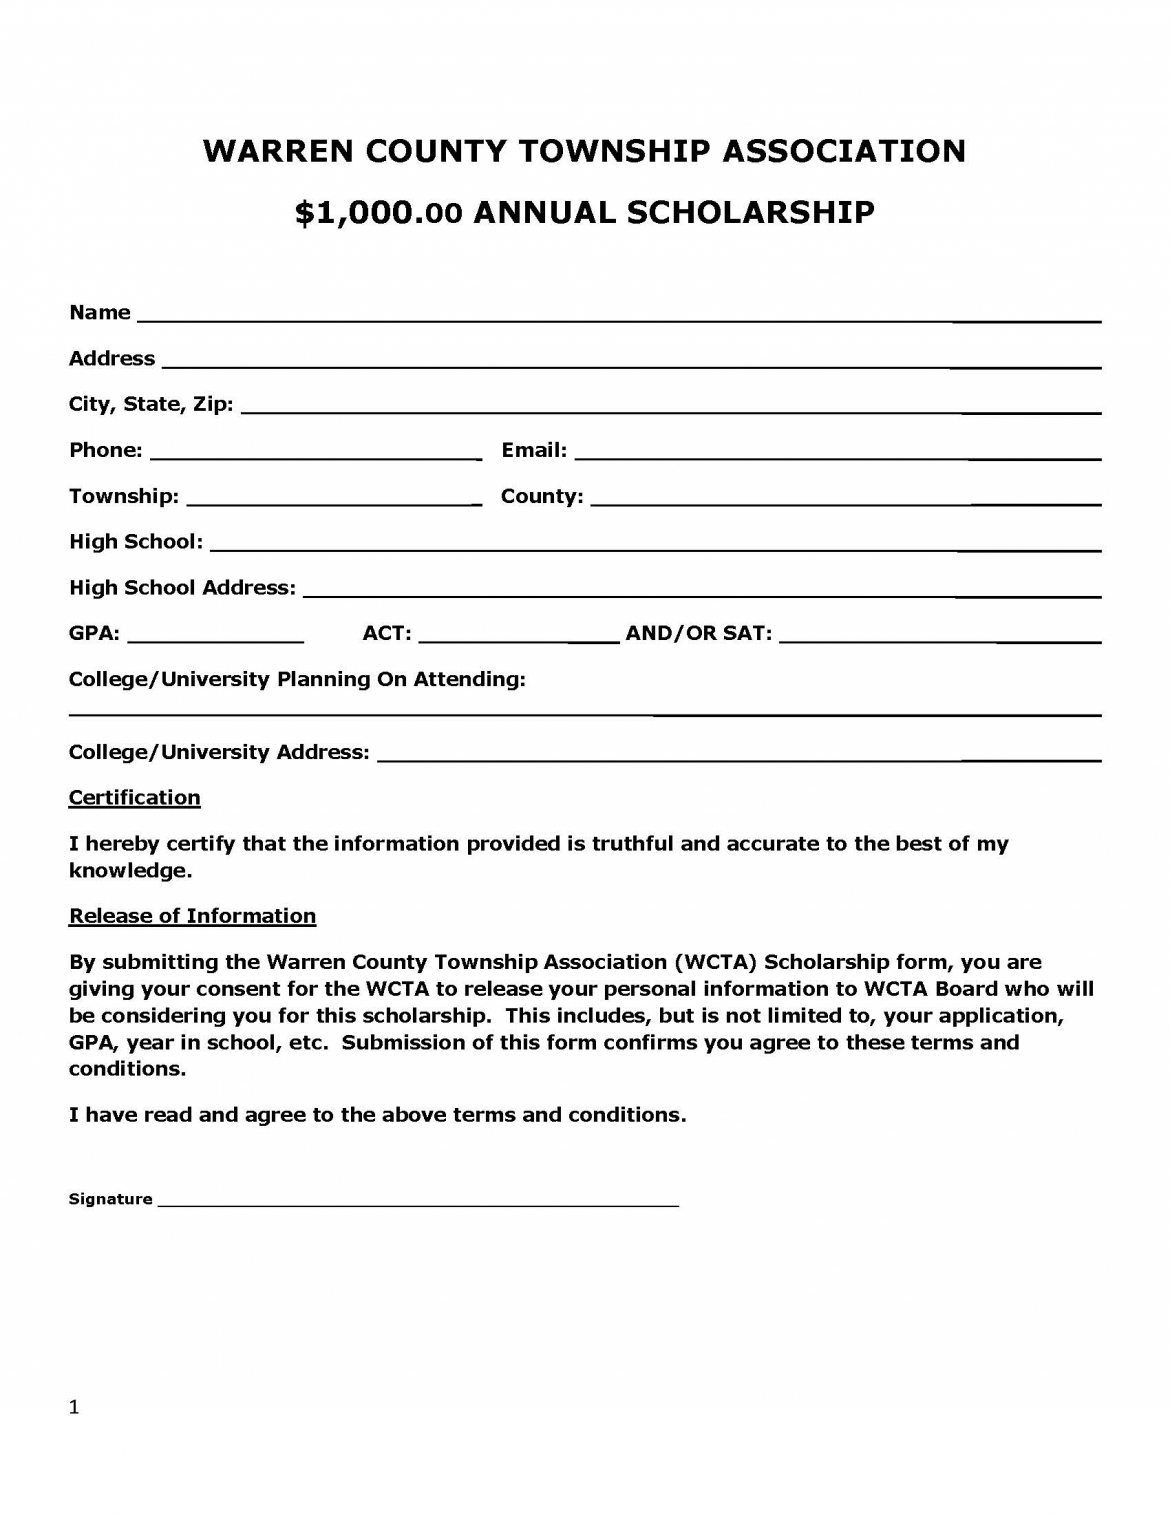 WCTA Scholarship 2020_Page_1